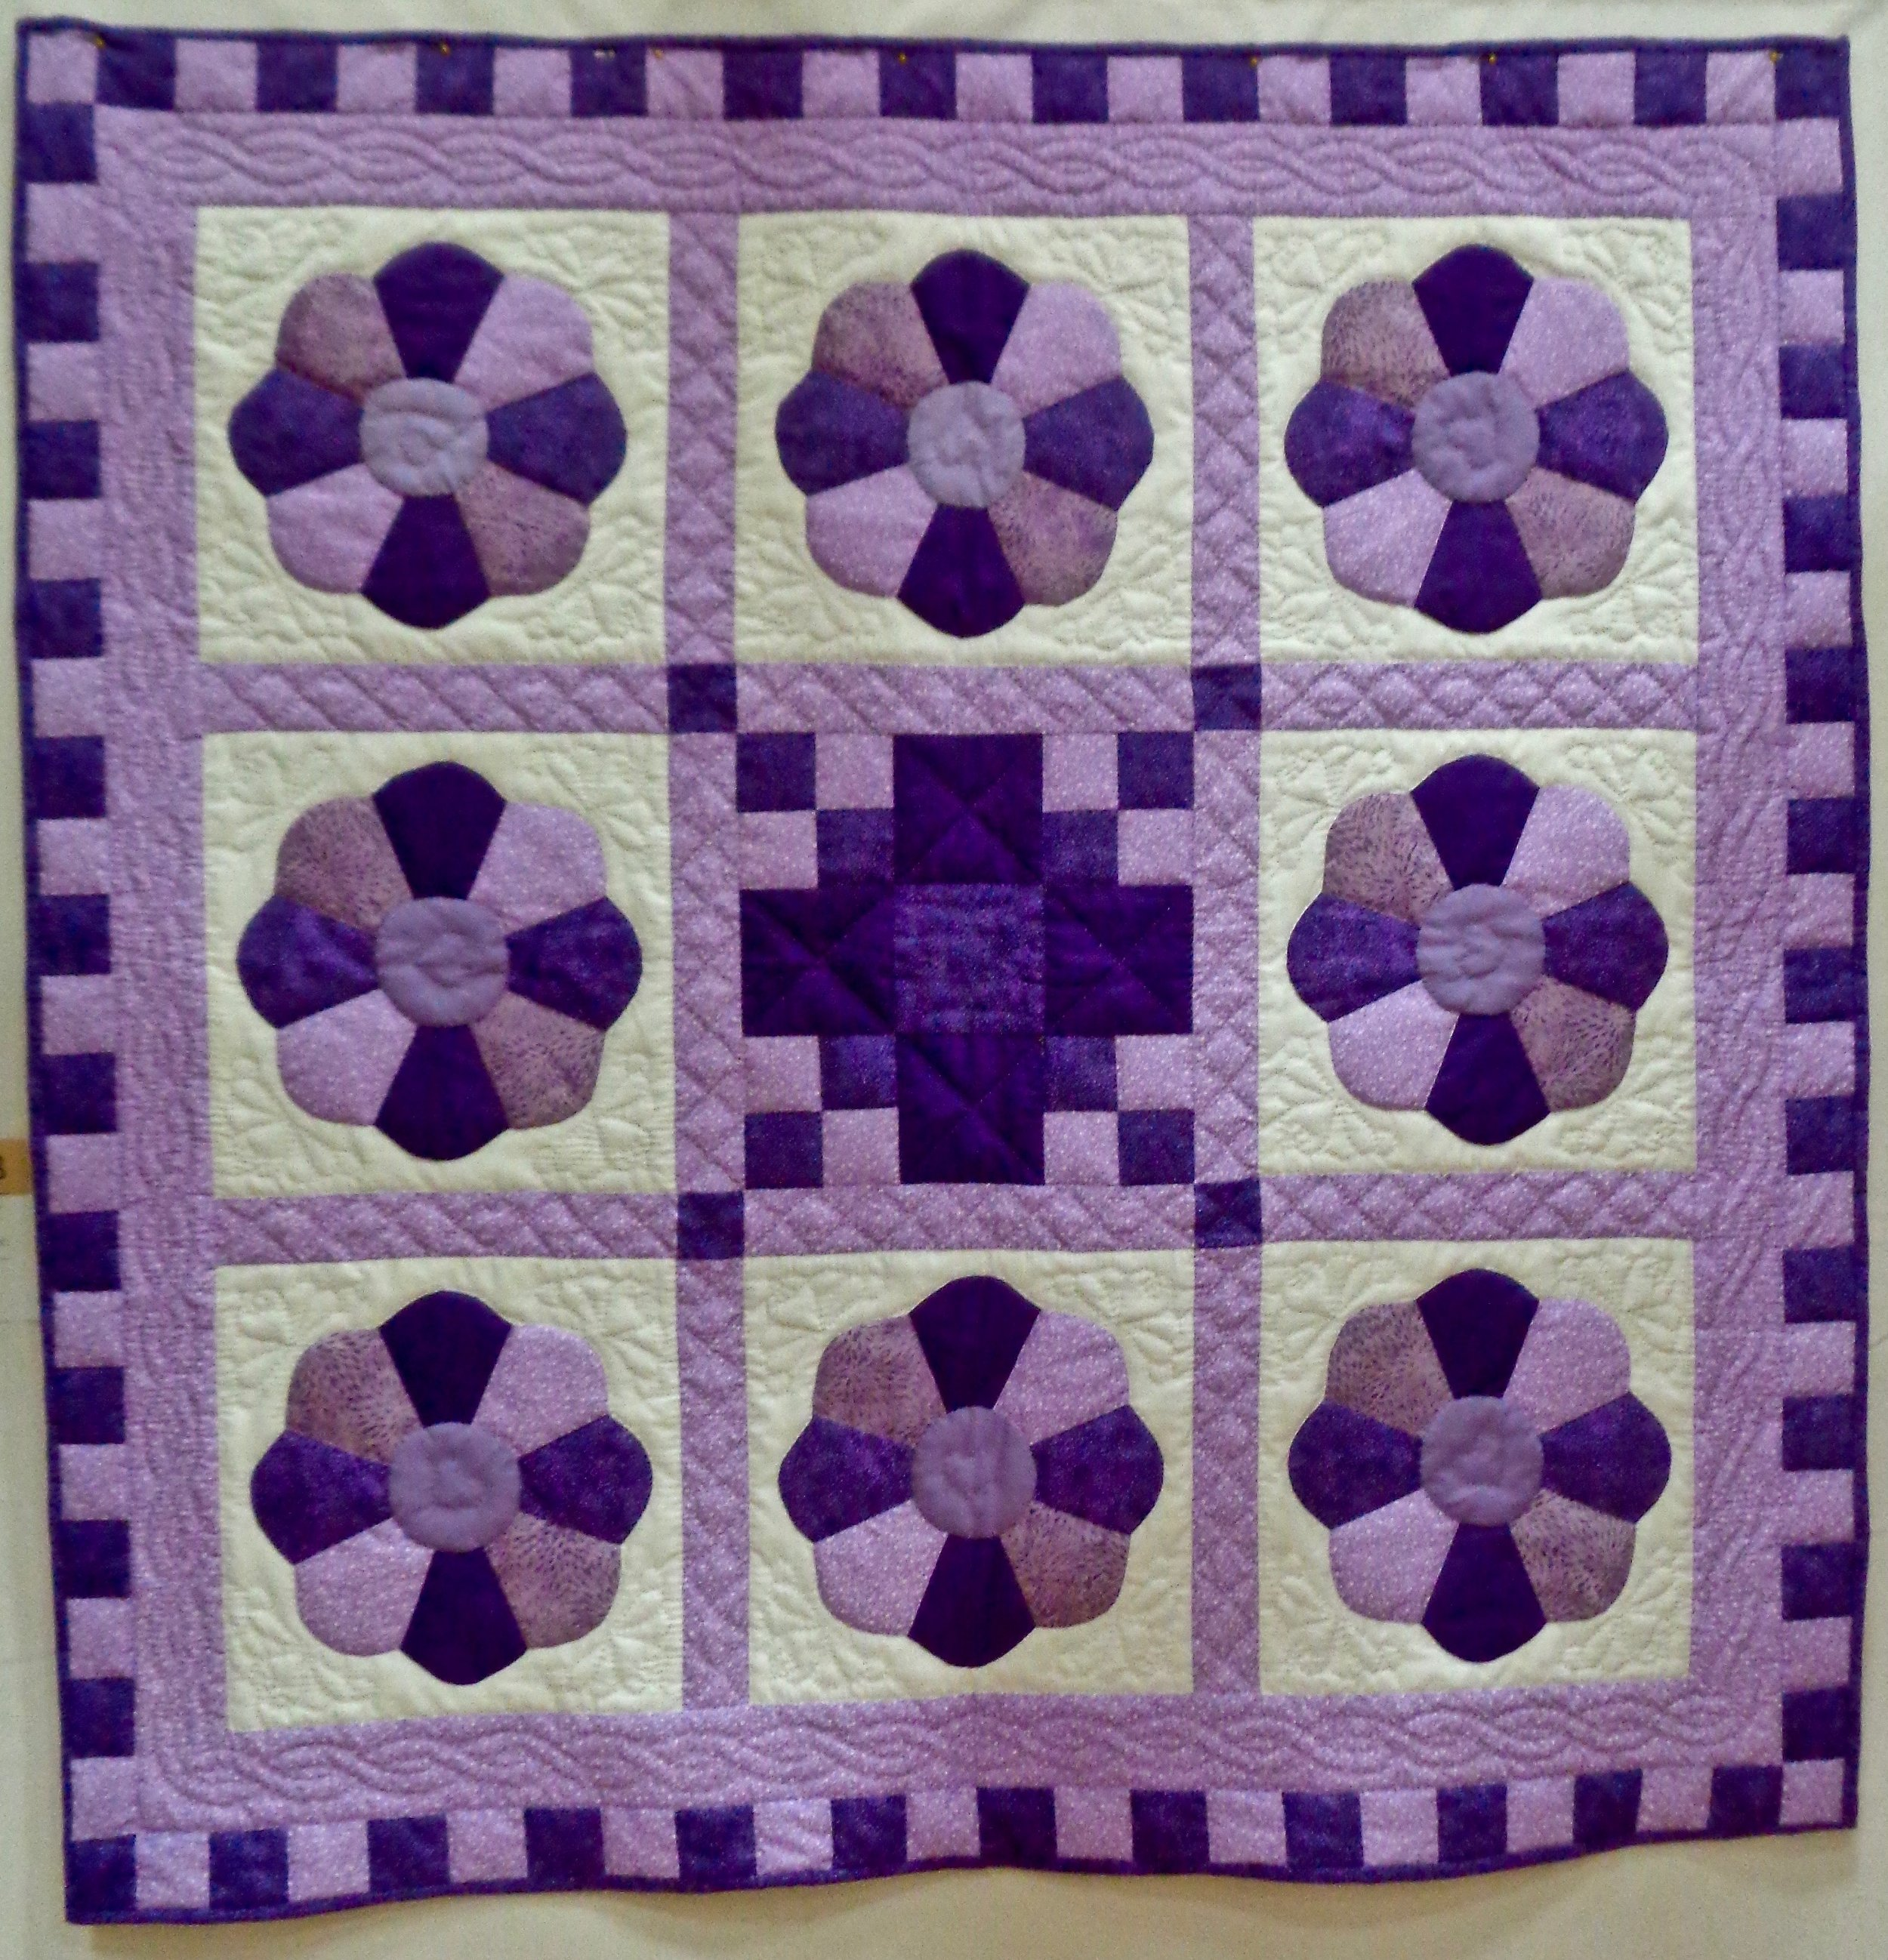 Dresden Plate, Pieced & Hand Quilted by Jane Nussbaum, donated by First Mennonite Church-Berne, 48 x 48""